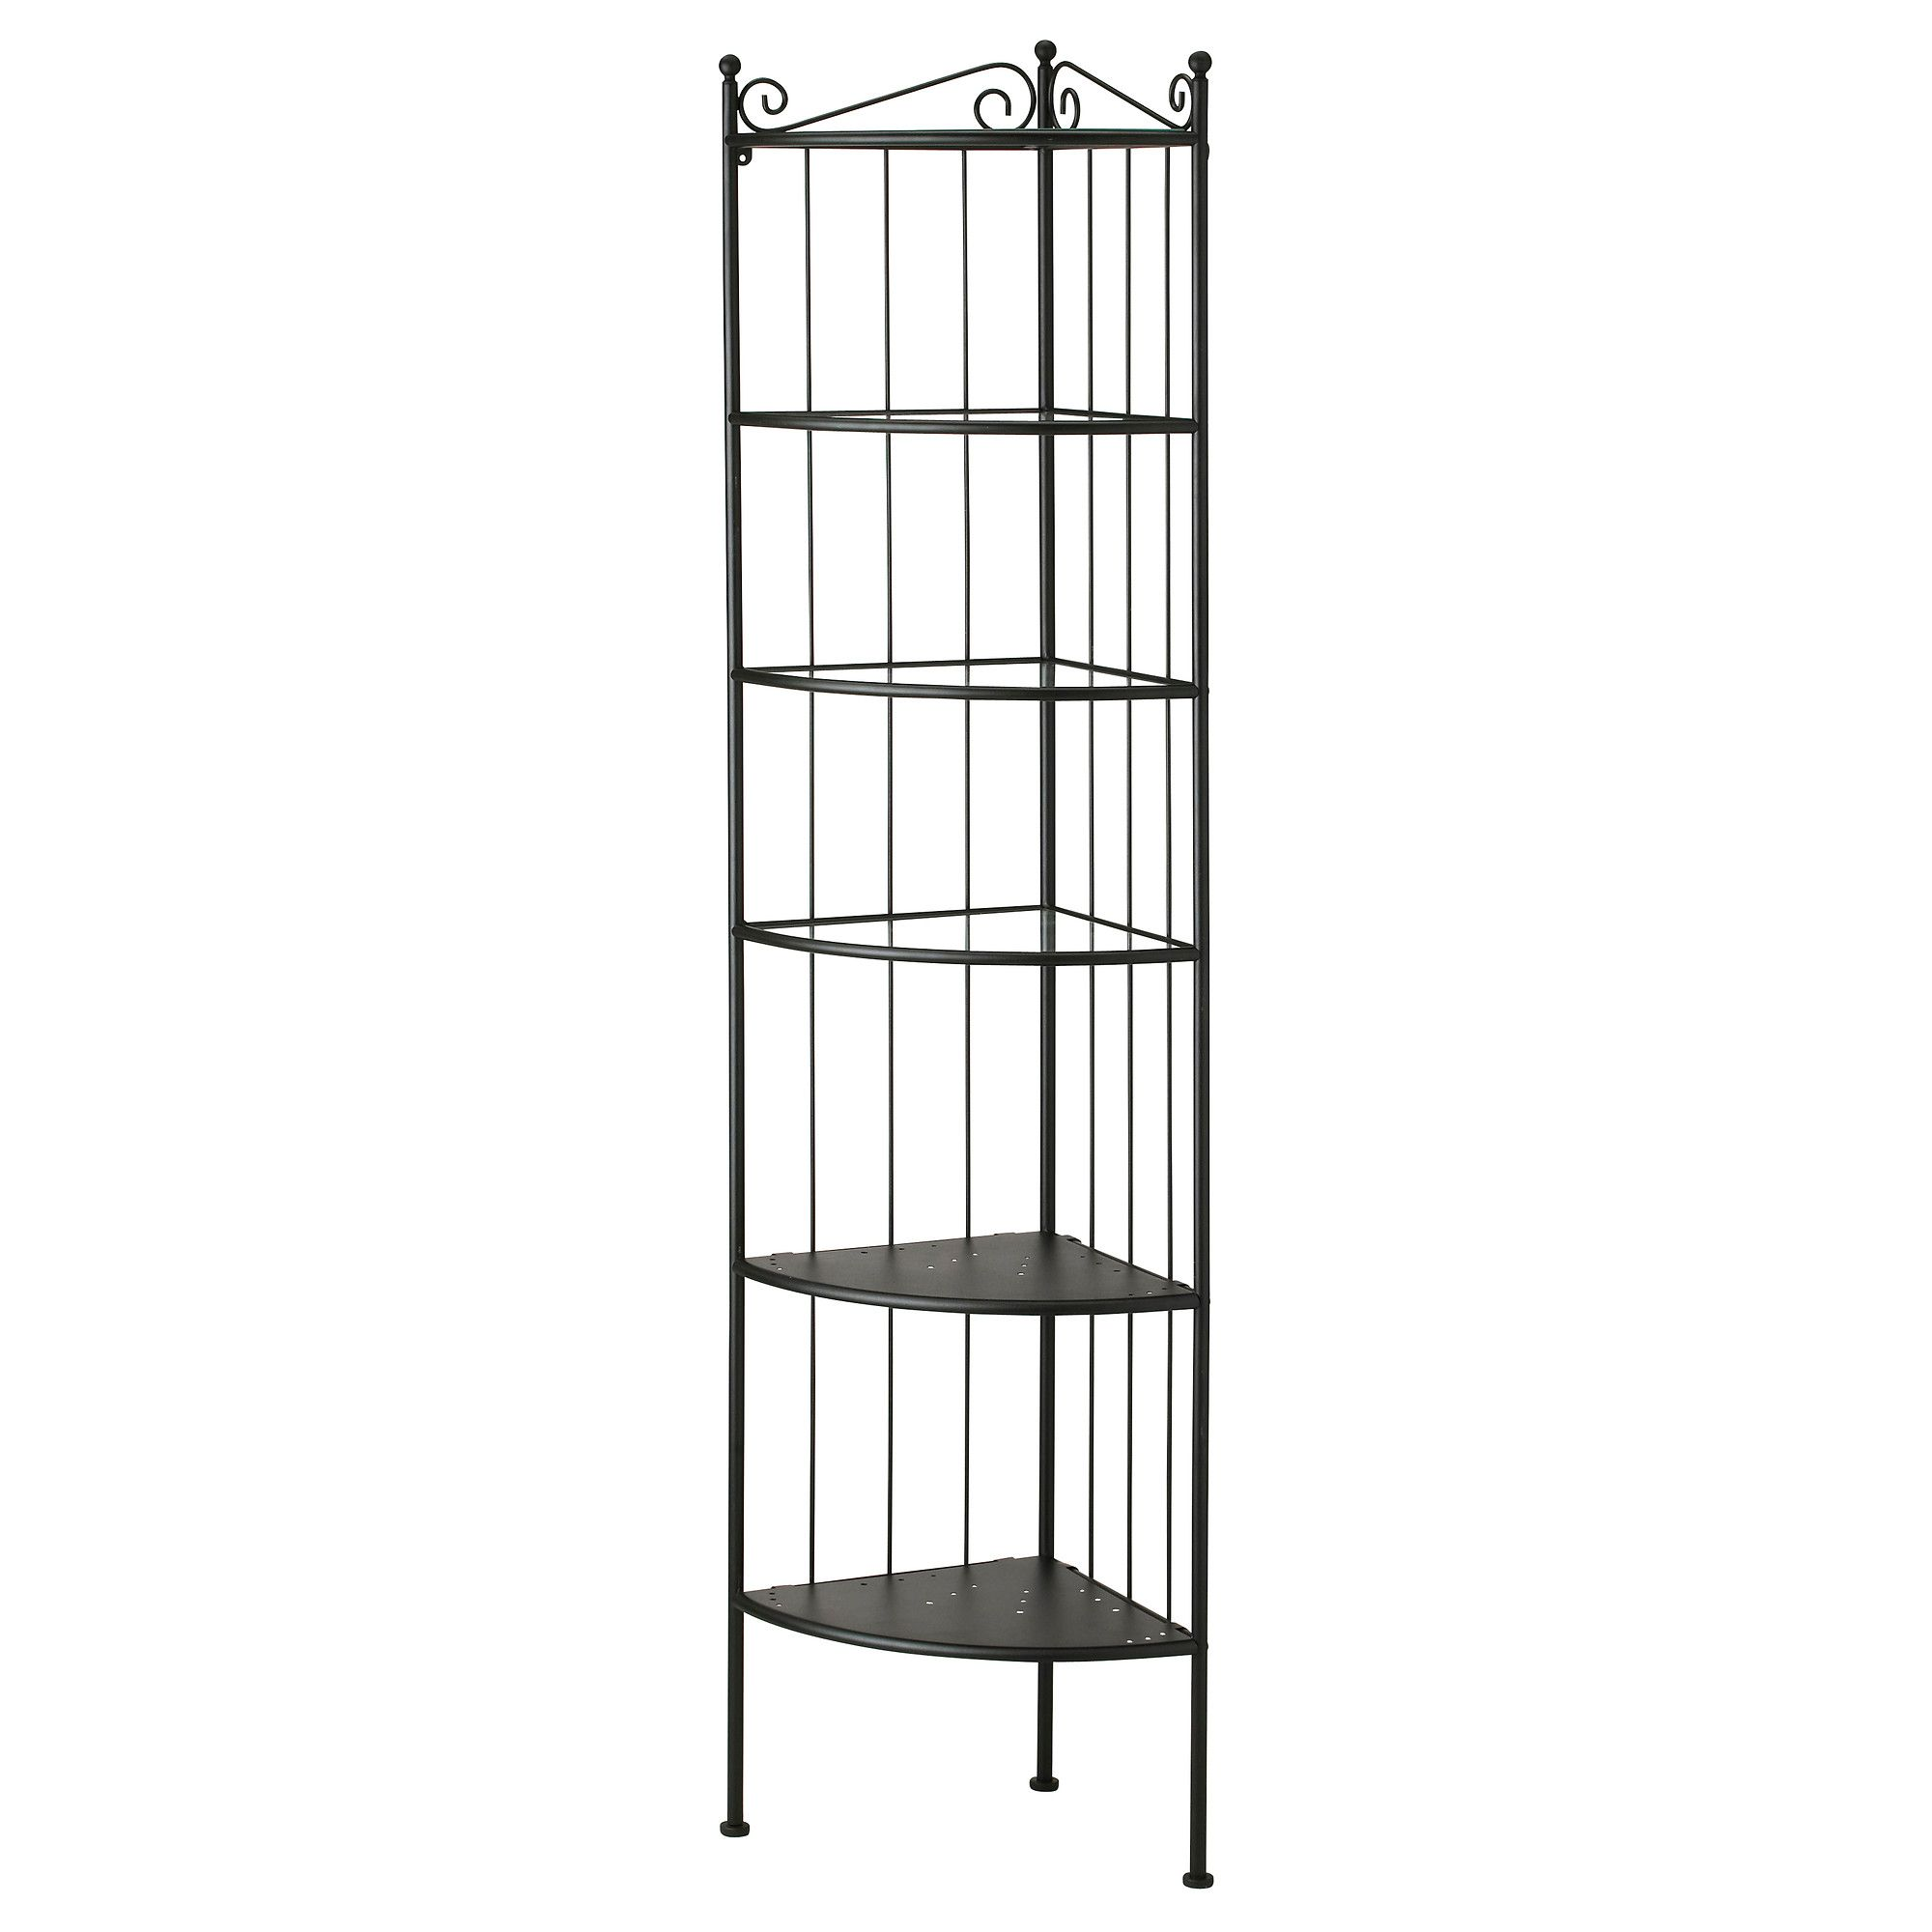 Ronnskar Corner Shelf Unit Black Badezimmer Eckregal Eckregal